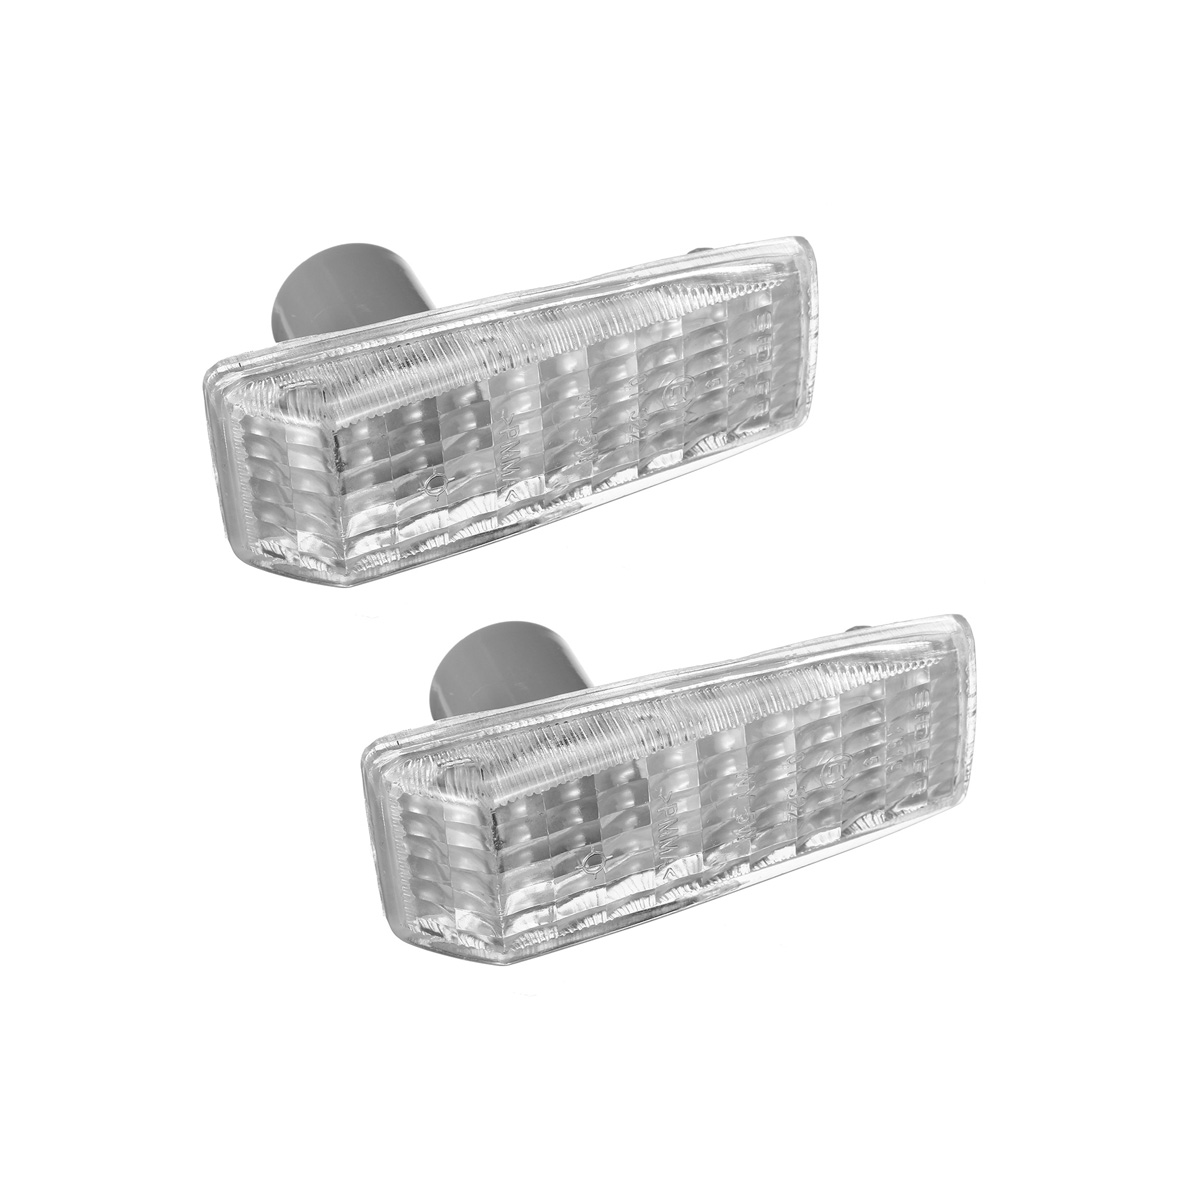 2x Mercedes A-Class W169 18-LED Front Indicator Repeater Turn Signal Light Bulbs